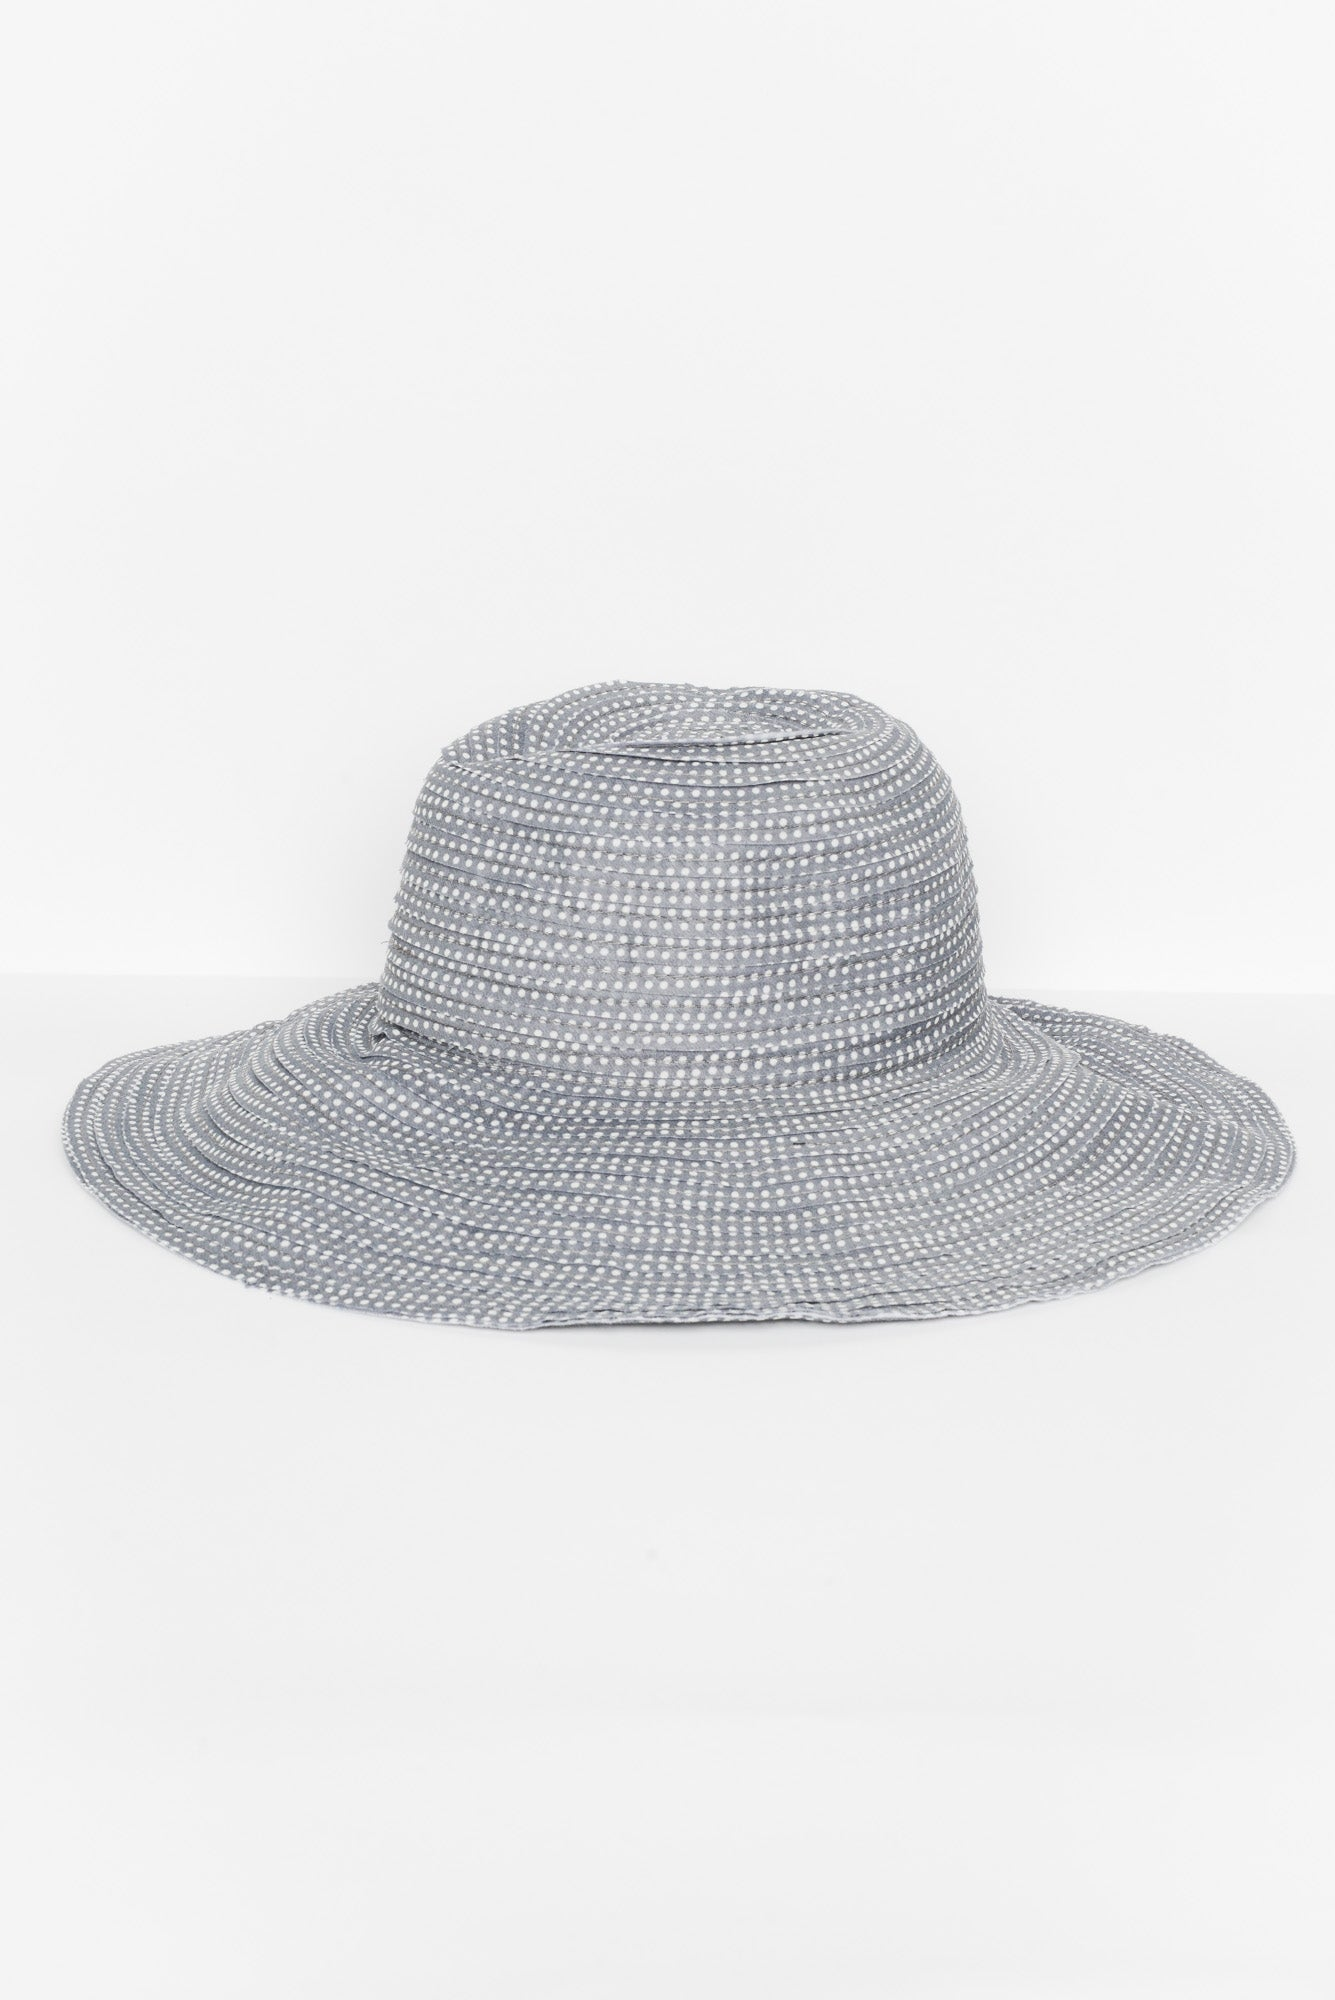 Dailly Grey Spotty Hat - Blue Bungalow